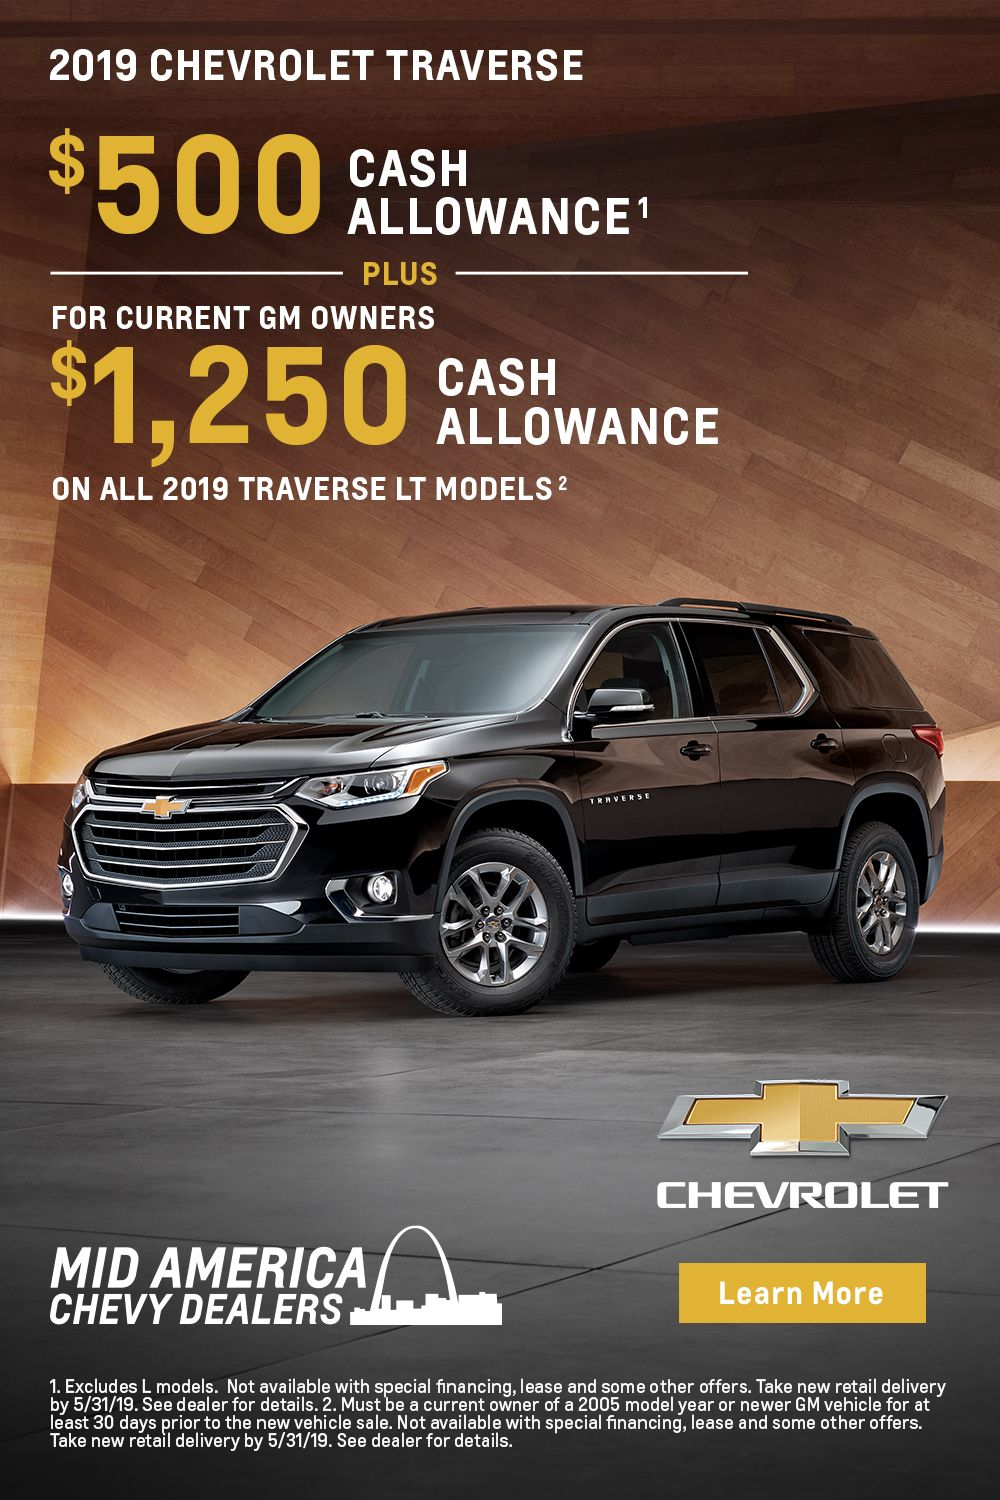 Shop now and visit your MidAmerica Chevy Dealers! Chevy